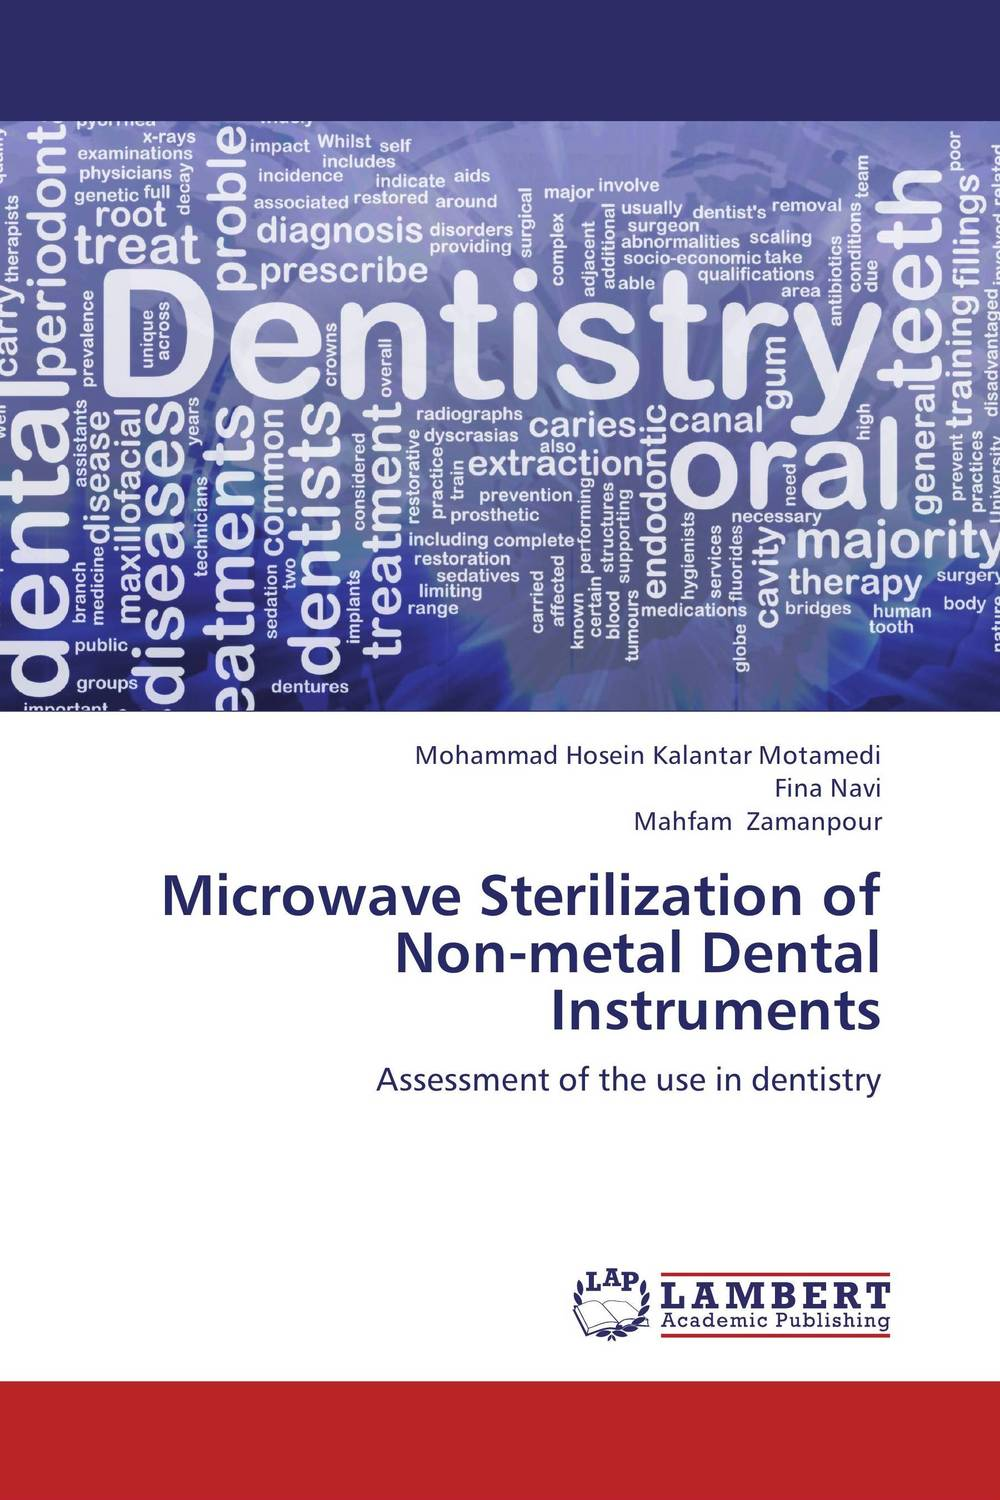 Microwave Sterilization of Non-metal Dental Instruments